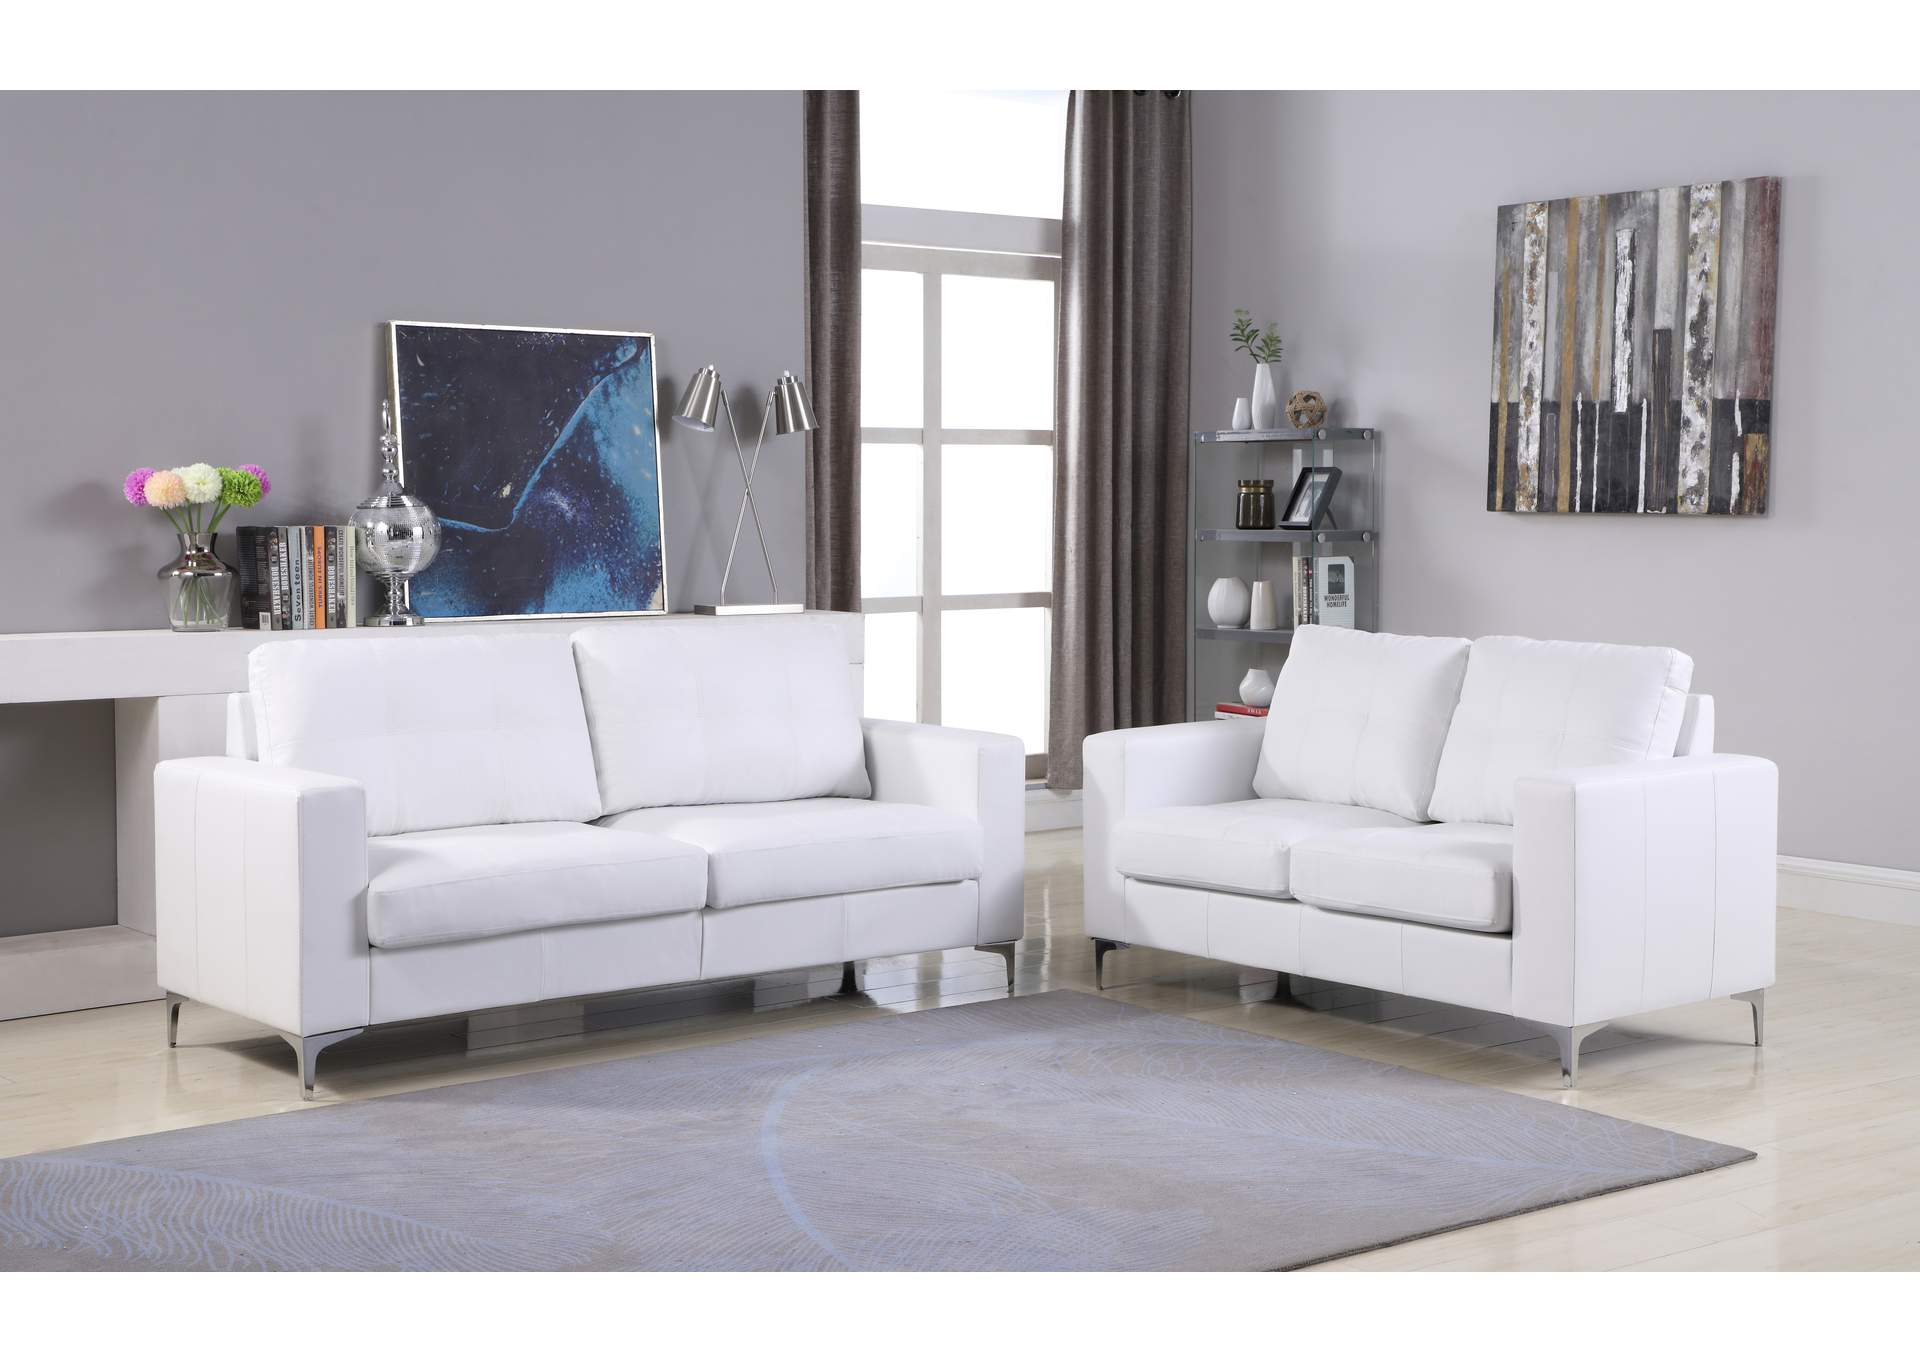 White Sofa & Loveseat With Chrome Leg,Global Trading